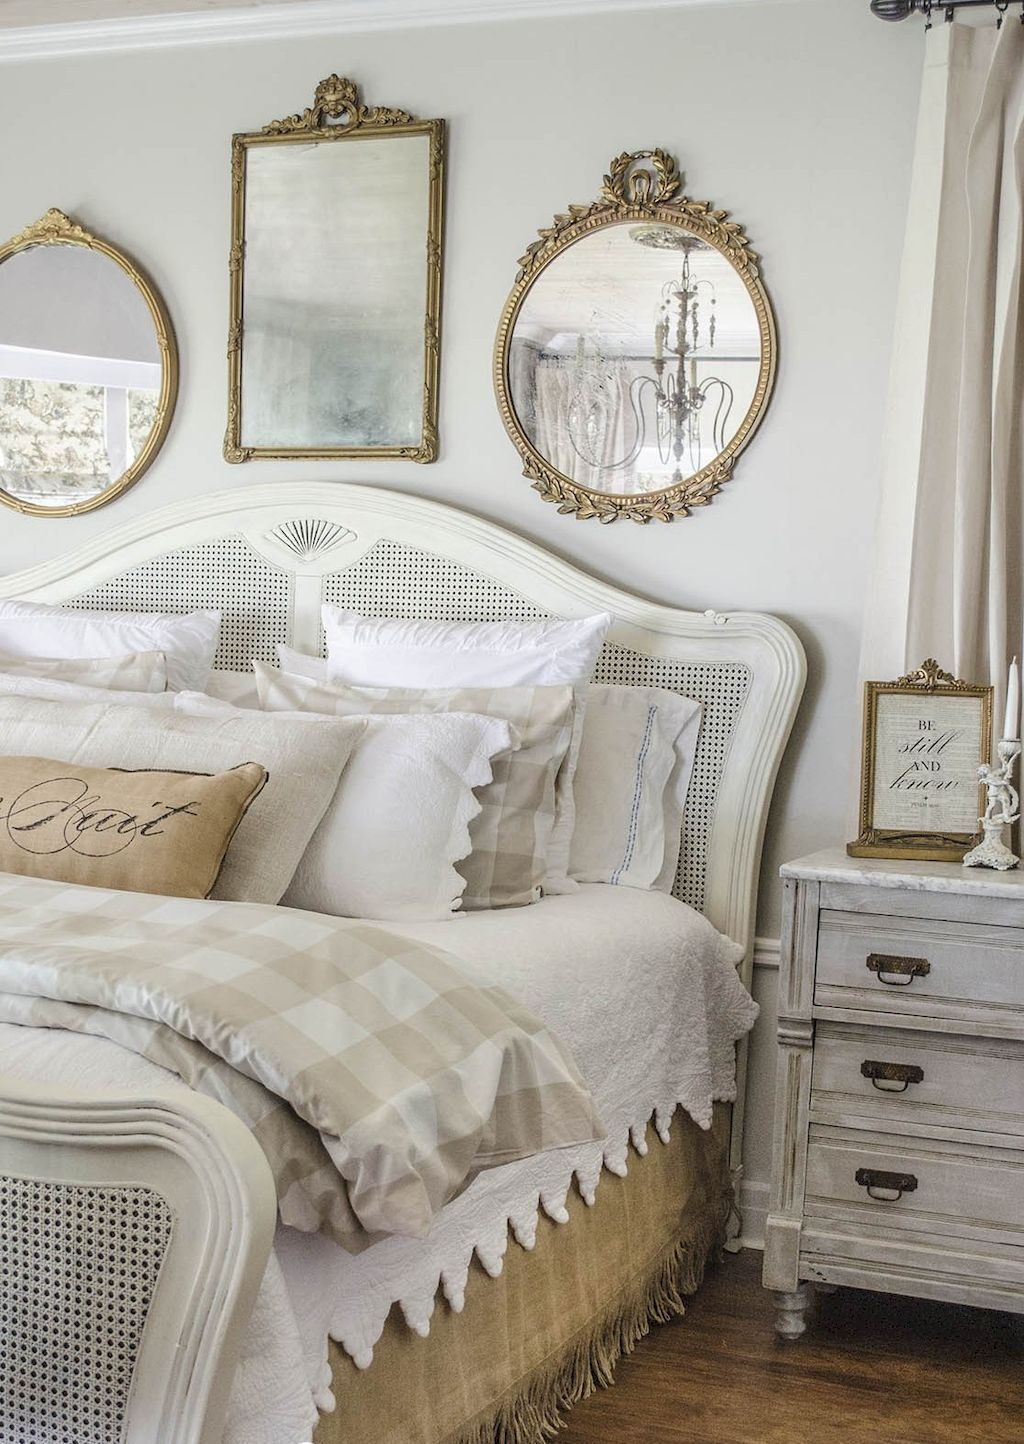 Romantic Shabby Chic Bedroom Decorating Ideas 53 Home Bedroom Home Decor Bedroom Bedroom Vintage